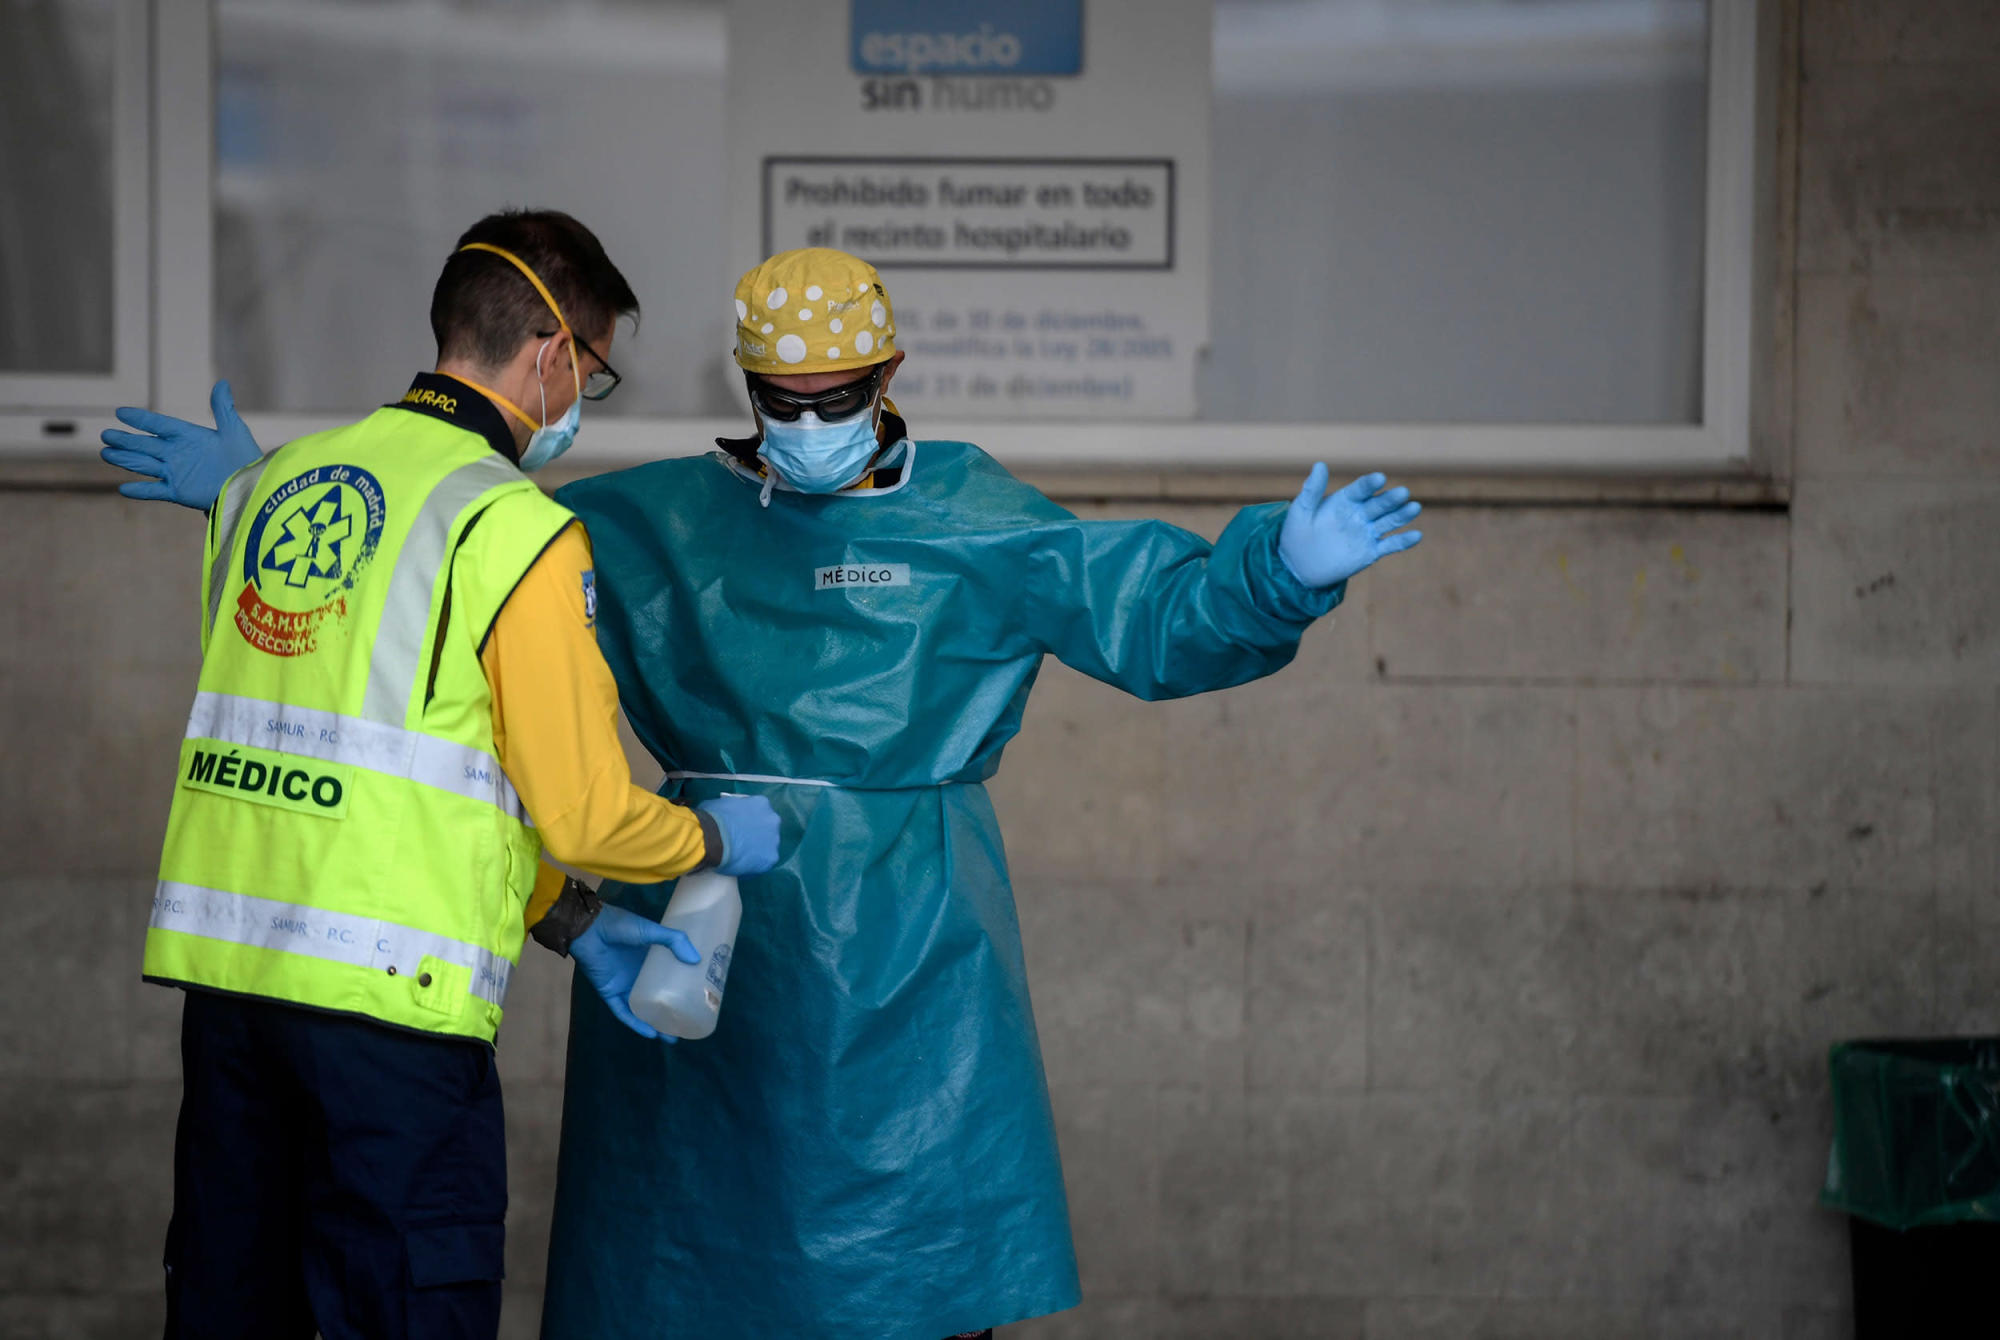 Europe faces new lockdowns as Covid outbreaks spiral